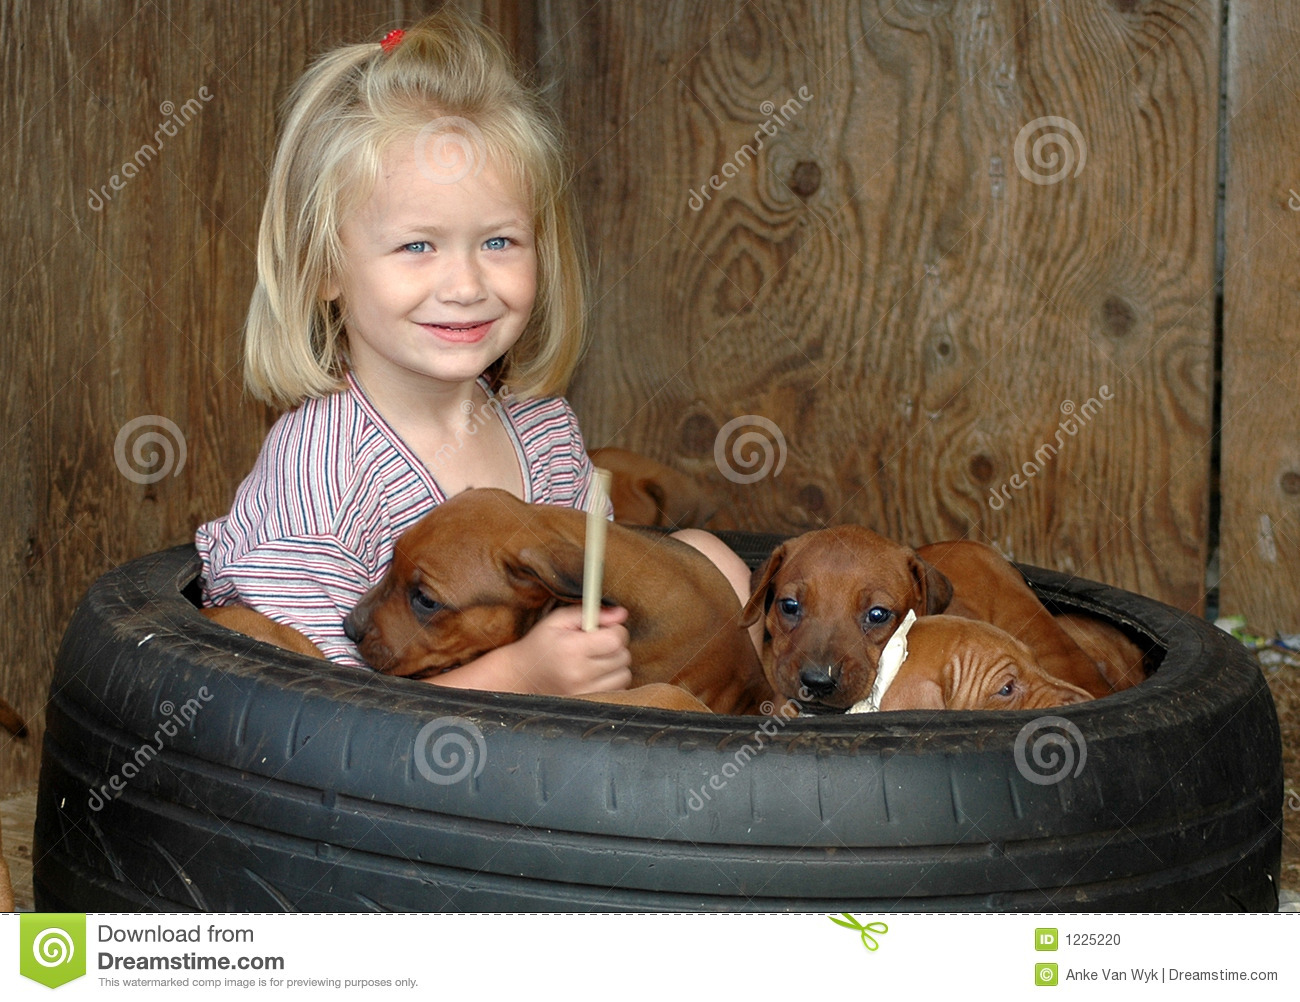 Child with puppies